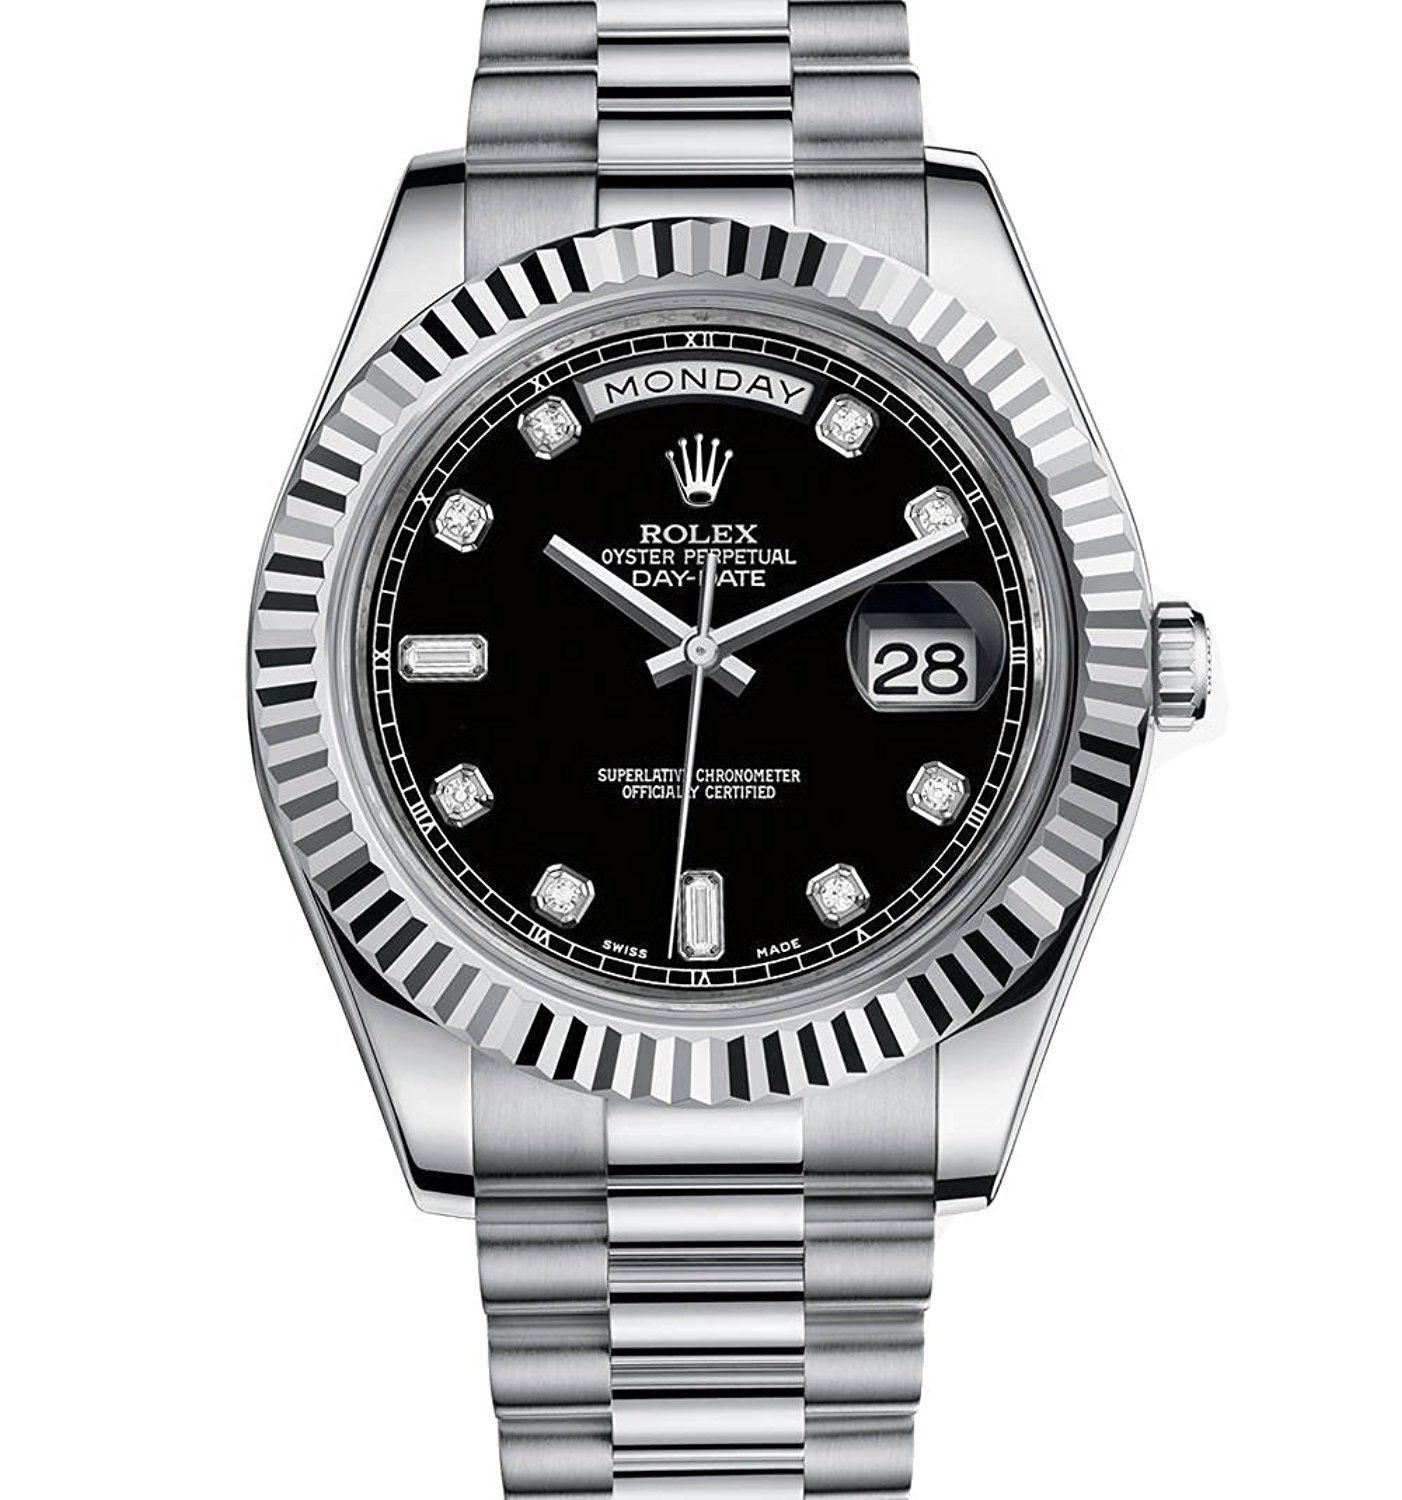 Rolex Day Date II Automatic Black Dial 18kt